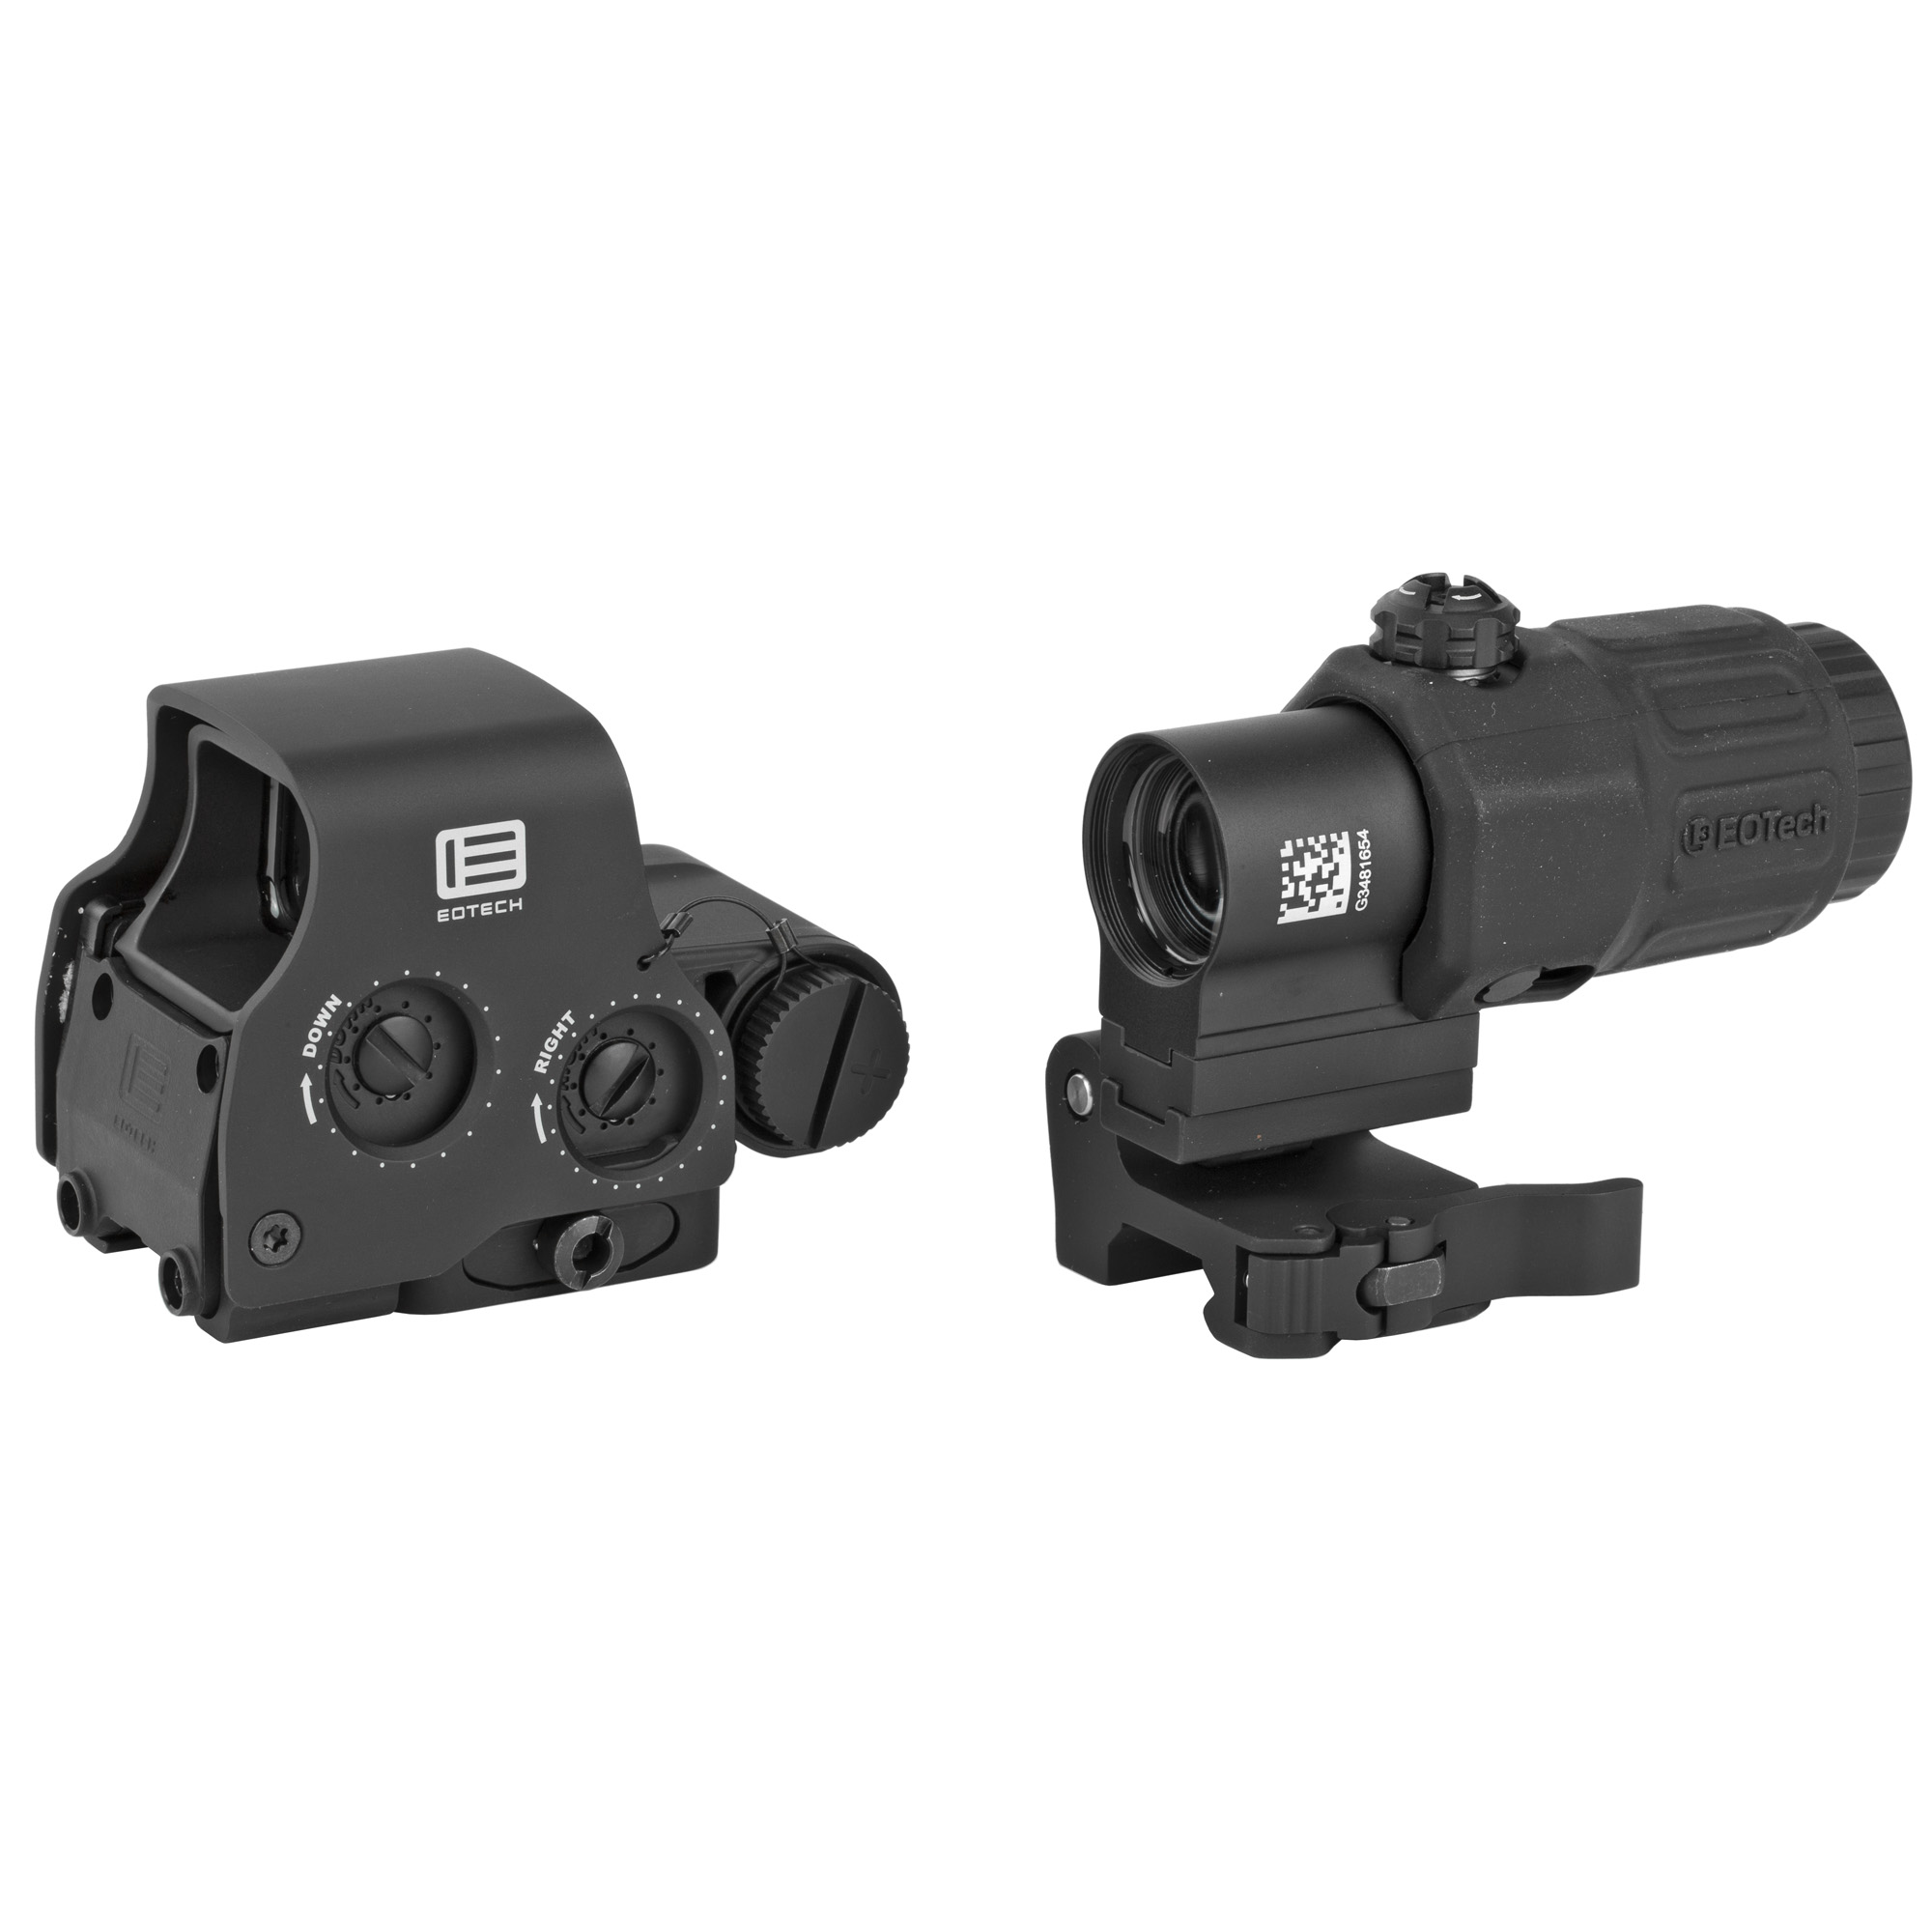 "The Holographic Hybrid Sight II (HHS II) has an EXPS2-2 with a G33.STSmagnifier. Regardless of the scenario"" it provides an unparalleled advantage when transitioning from short-range to long-range shooting. The quick switch-to-side (STS) mount offers a simple"" instant disengagement of the magnifier. The HHS II combination is the perfect setup for hunting when your target is on the move."